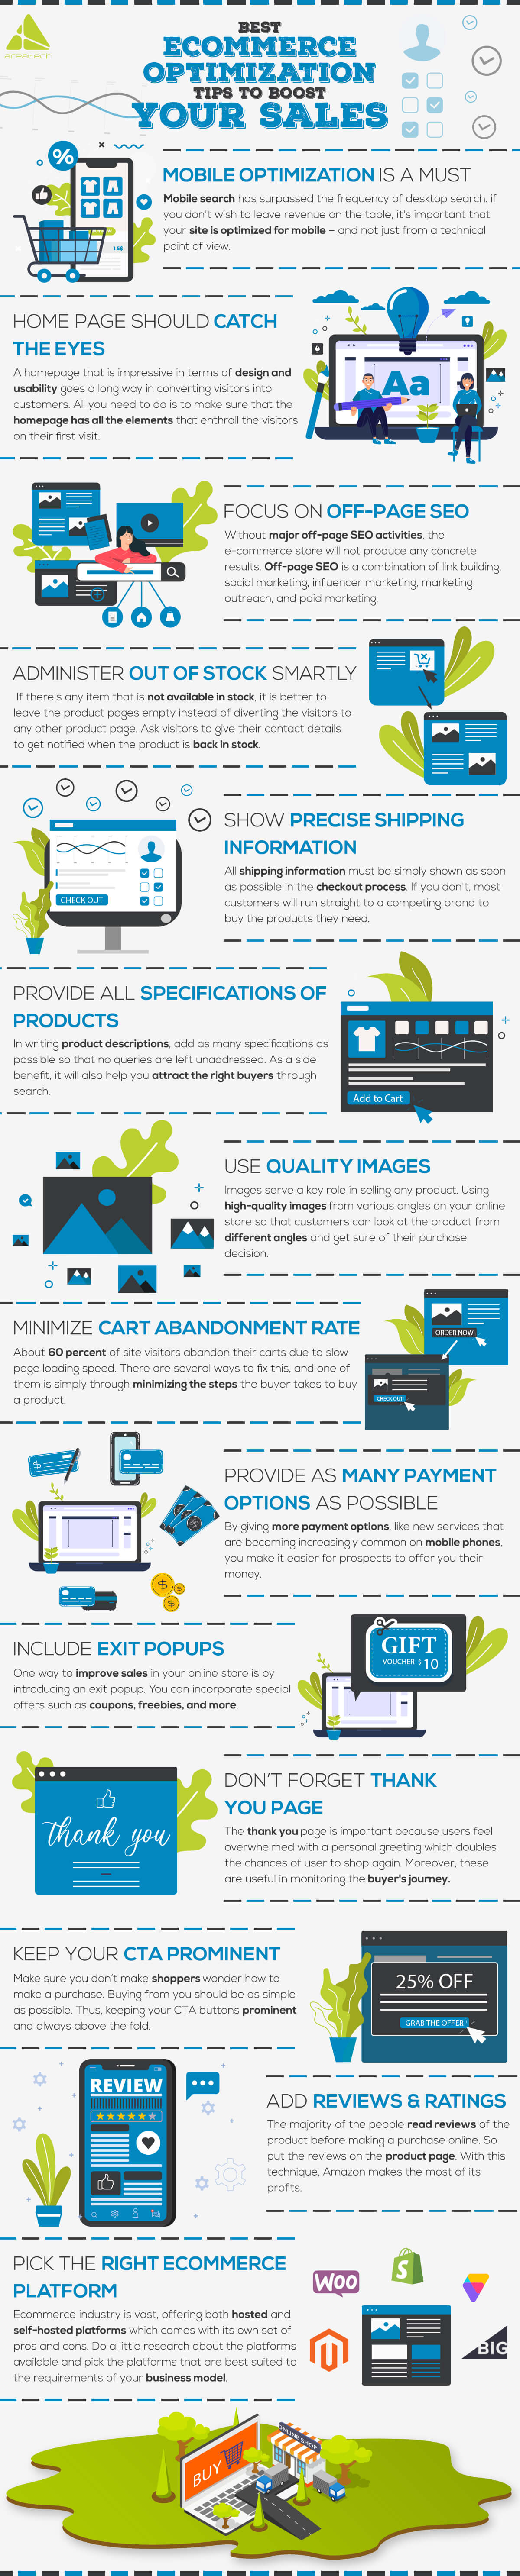 Boost-Your-Ecommerce-Sales-Through-Optimization-infographics (1)